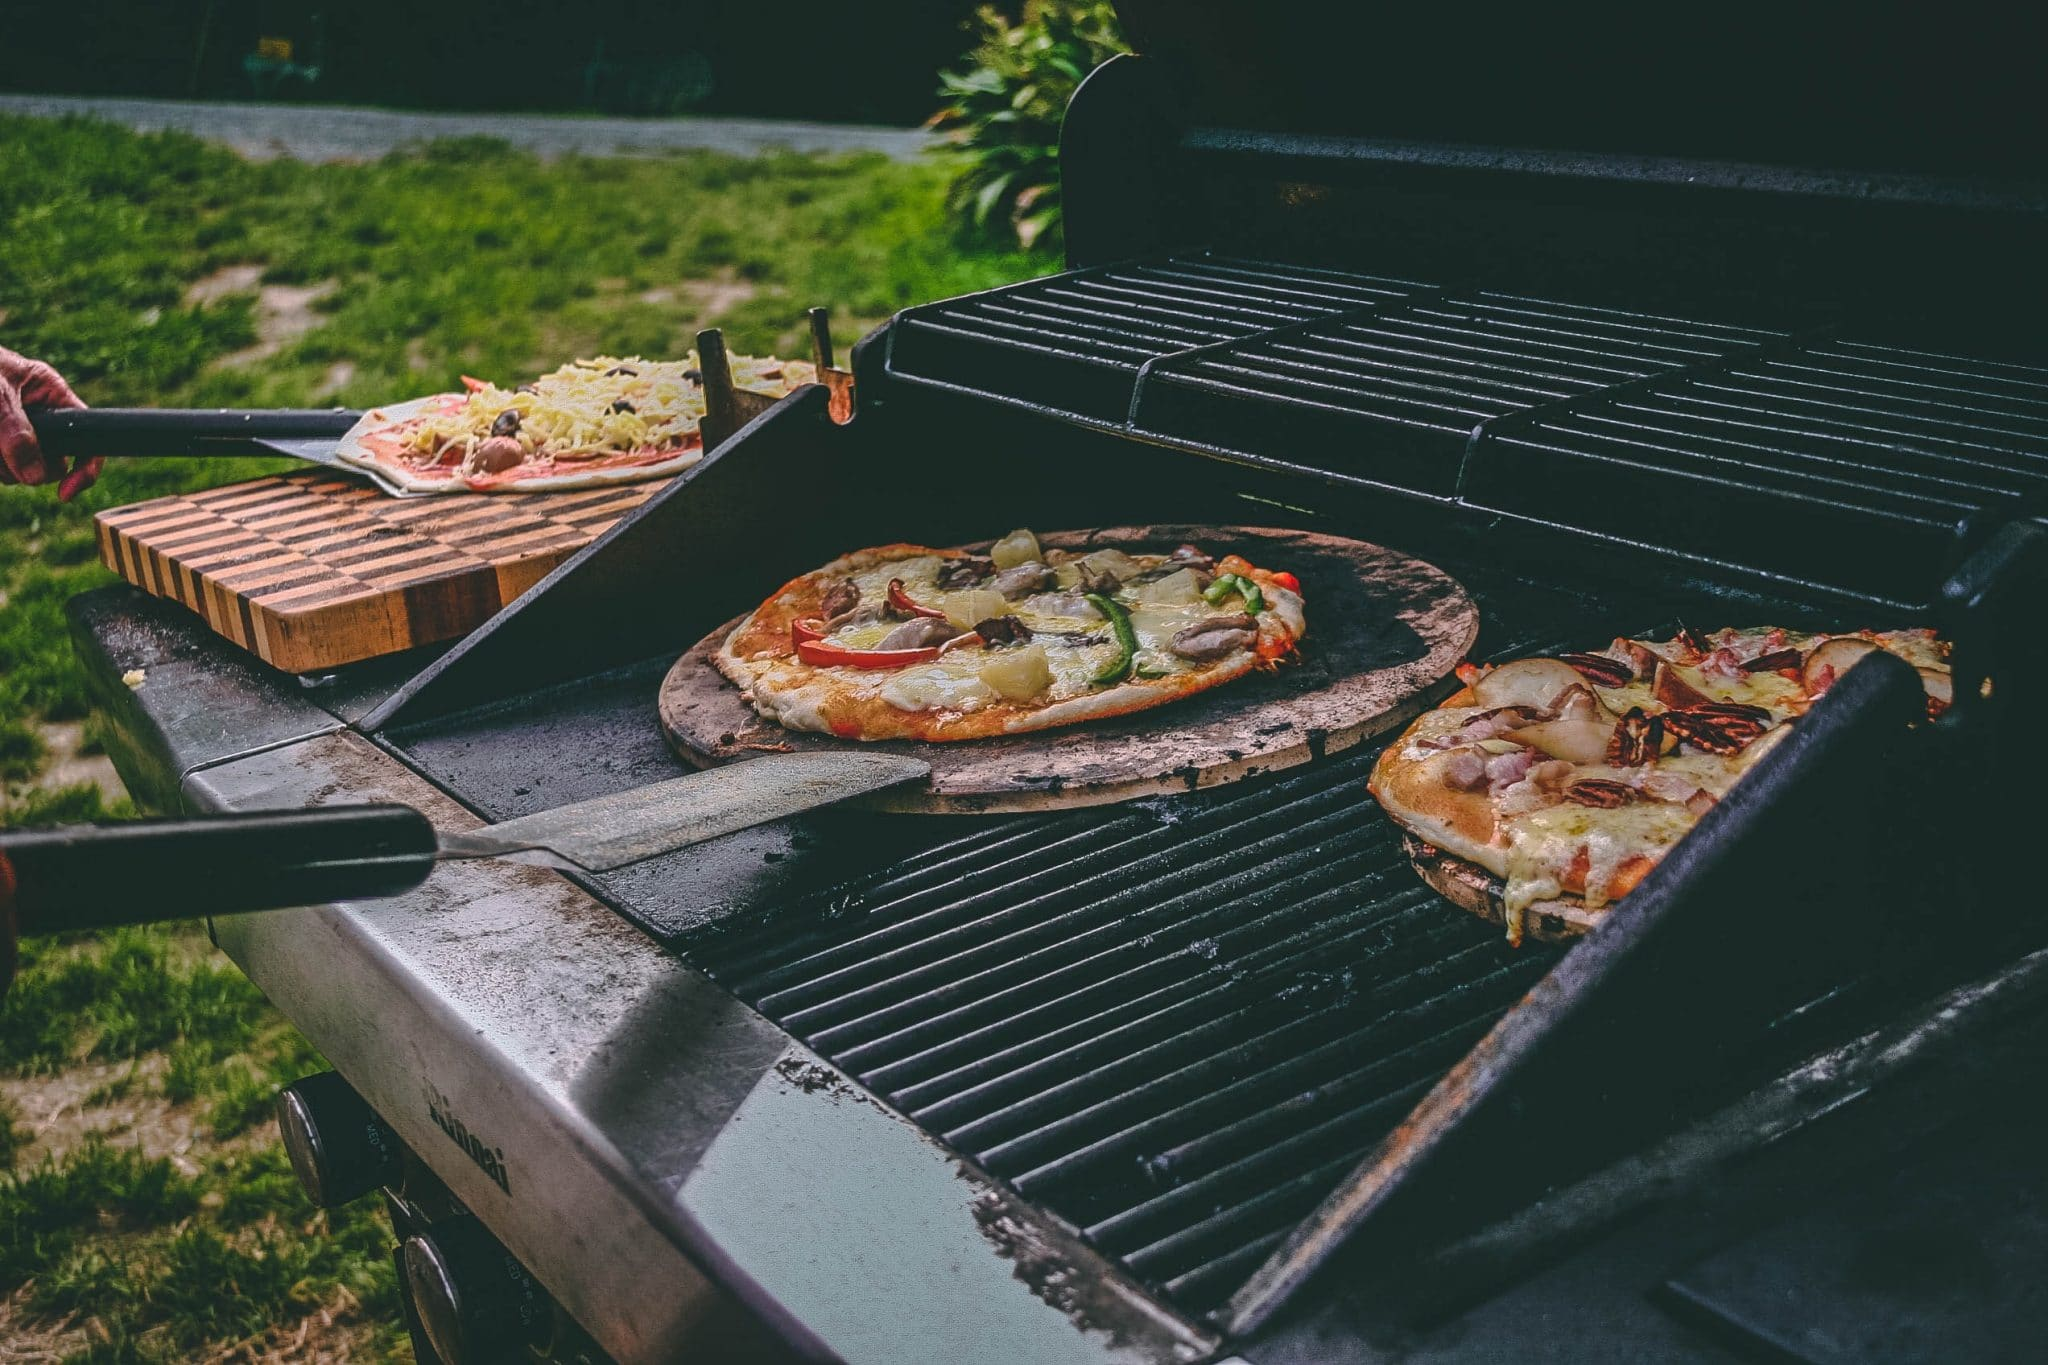 pizza grill, backyard grill